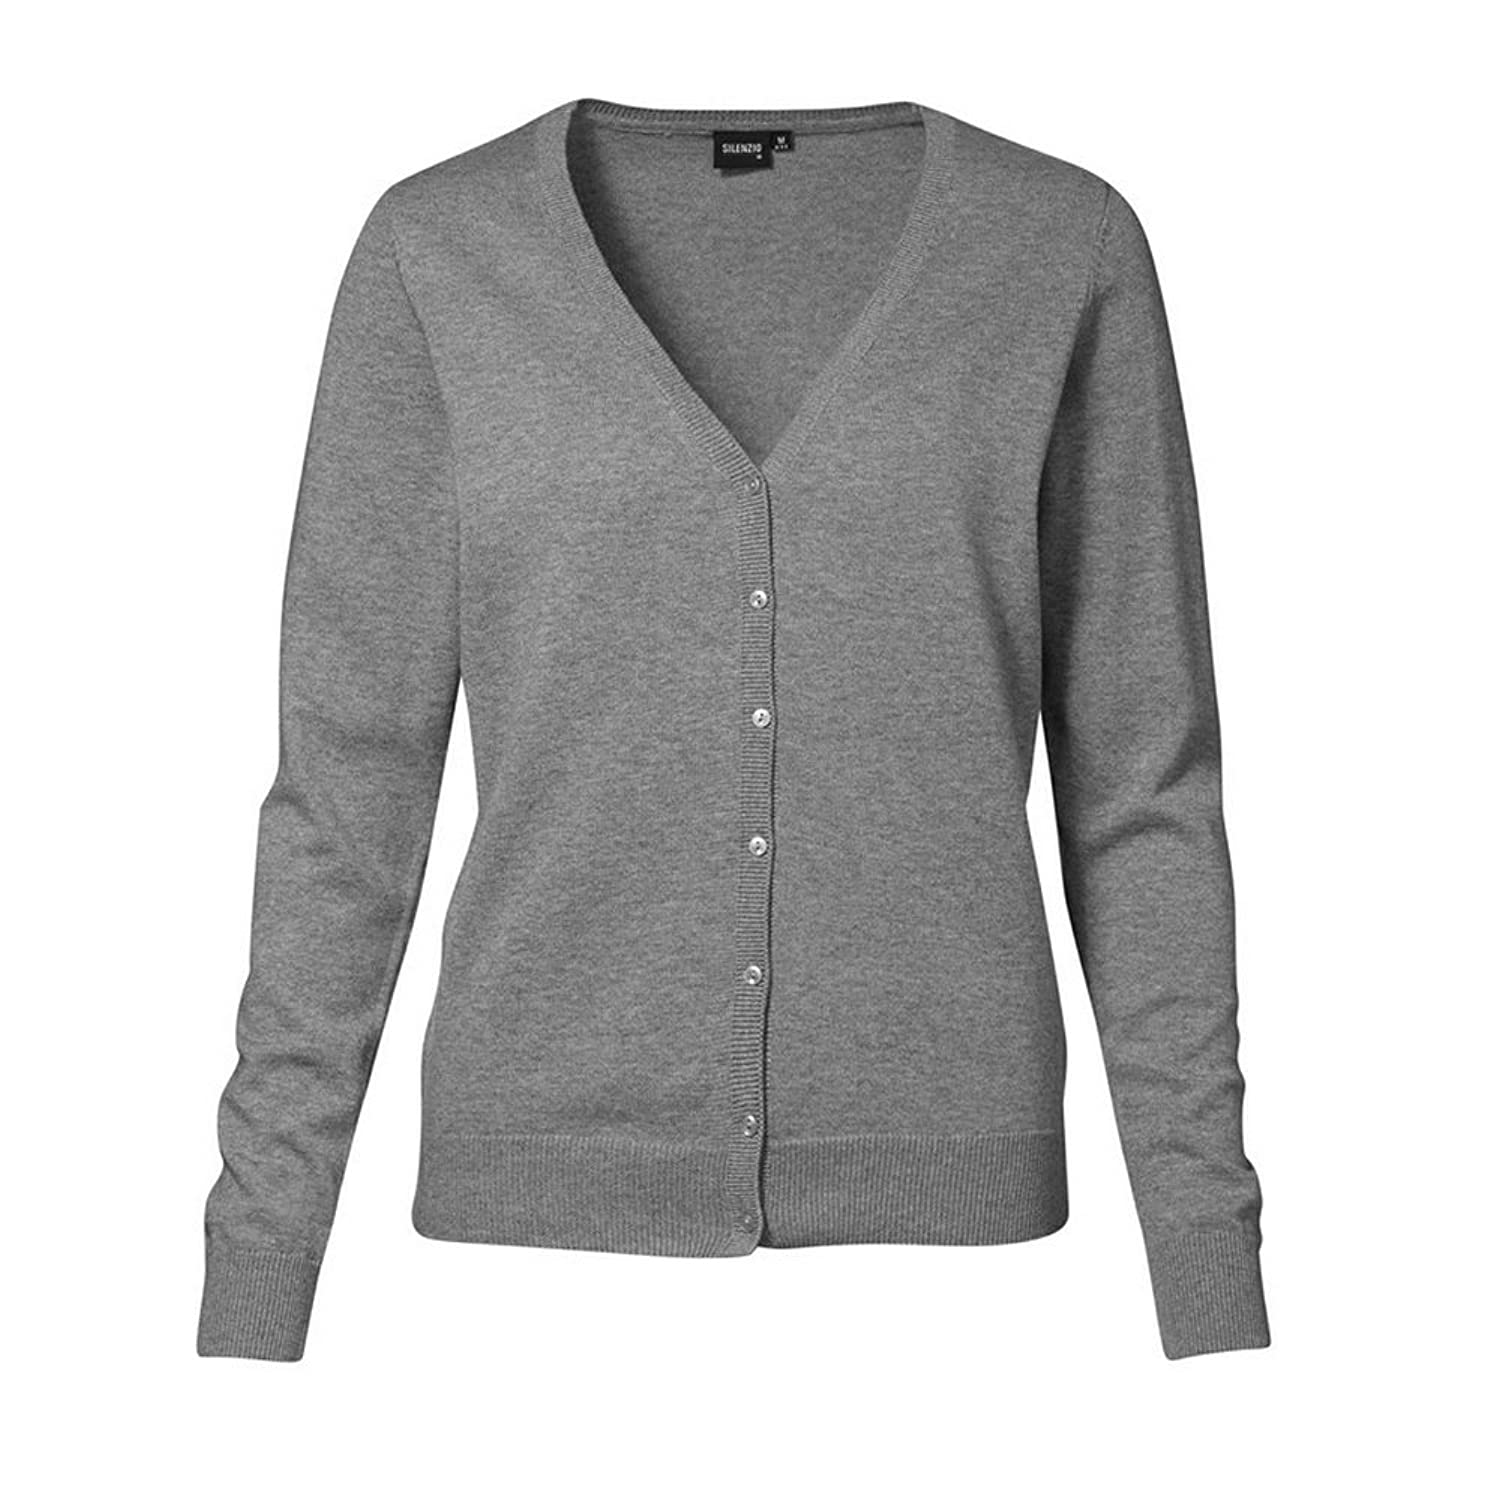 ID Womens/Ladies Knitted Button Up Cardigan Jumper